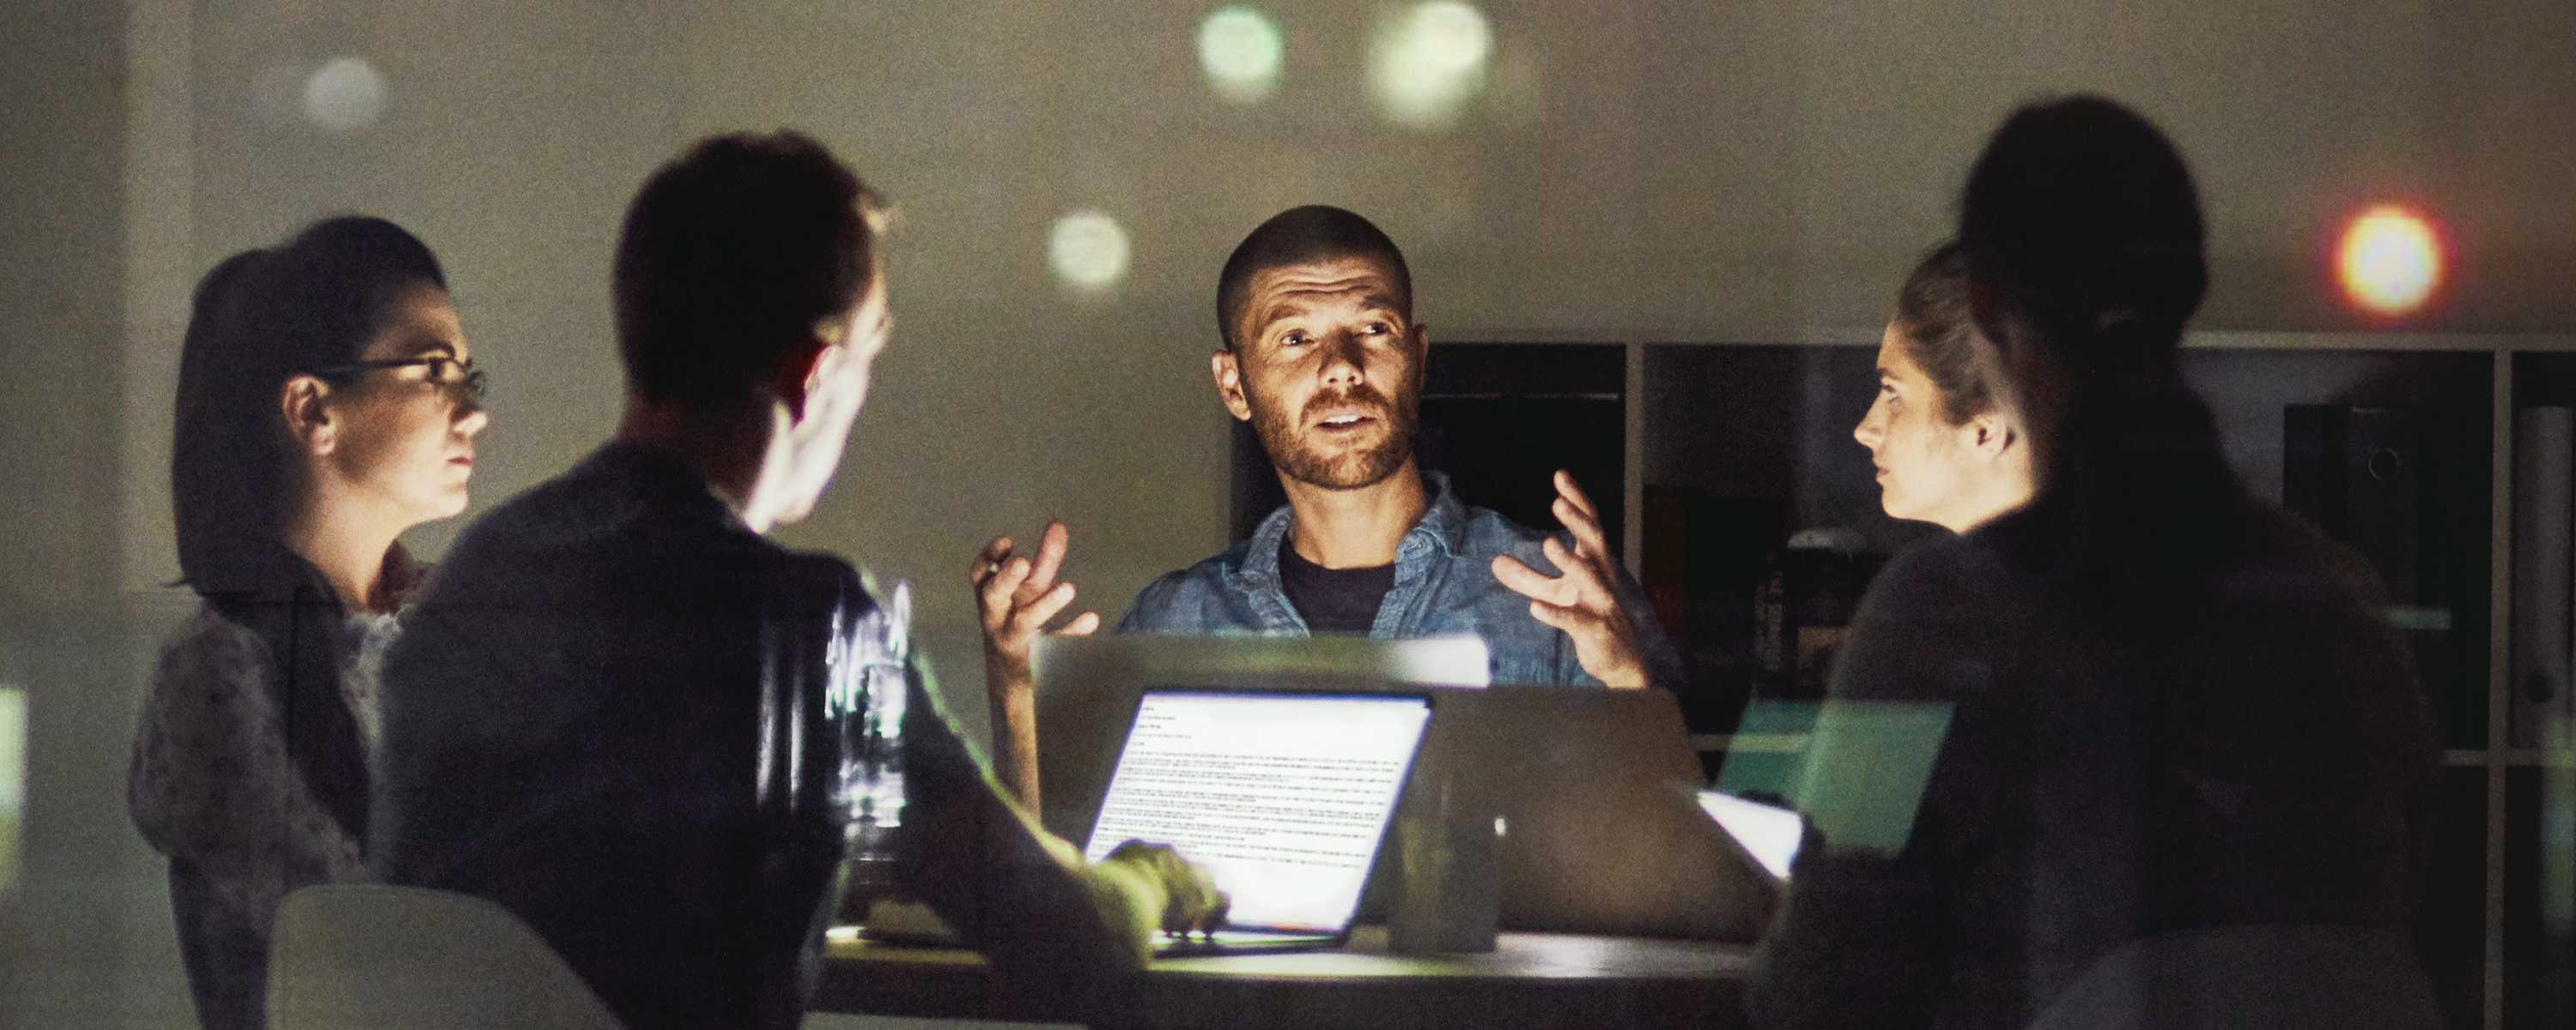 Five People Working Late in a Dark Office > Image > Blog